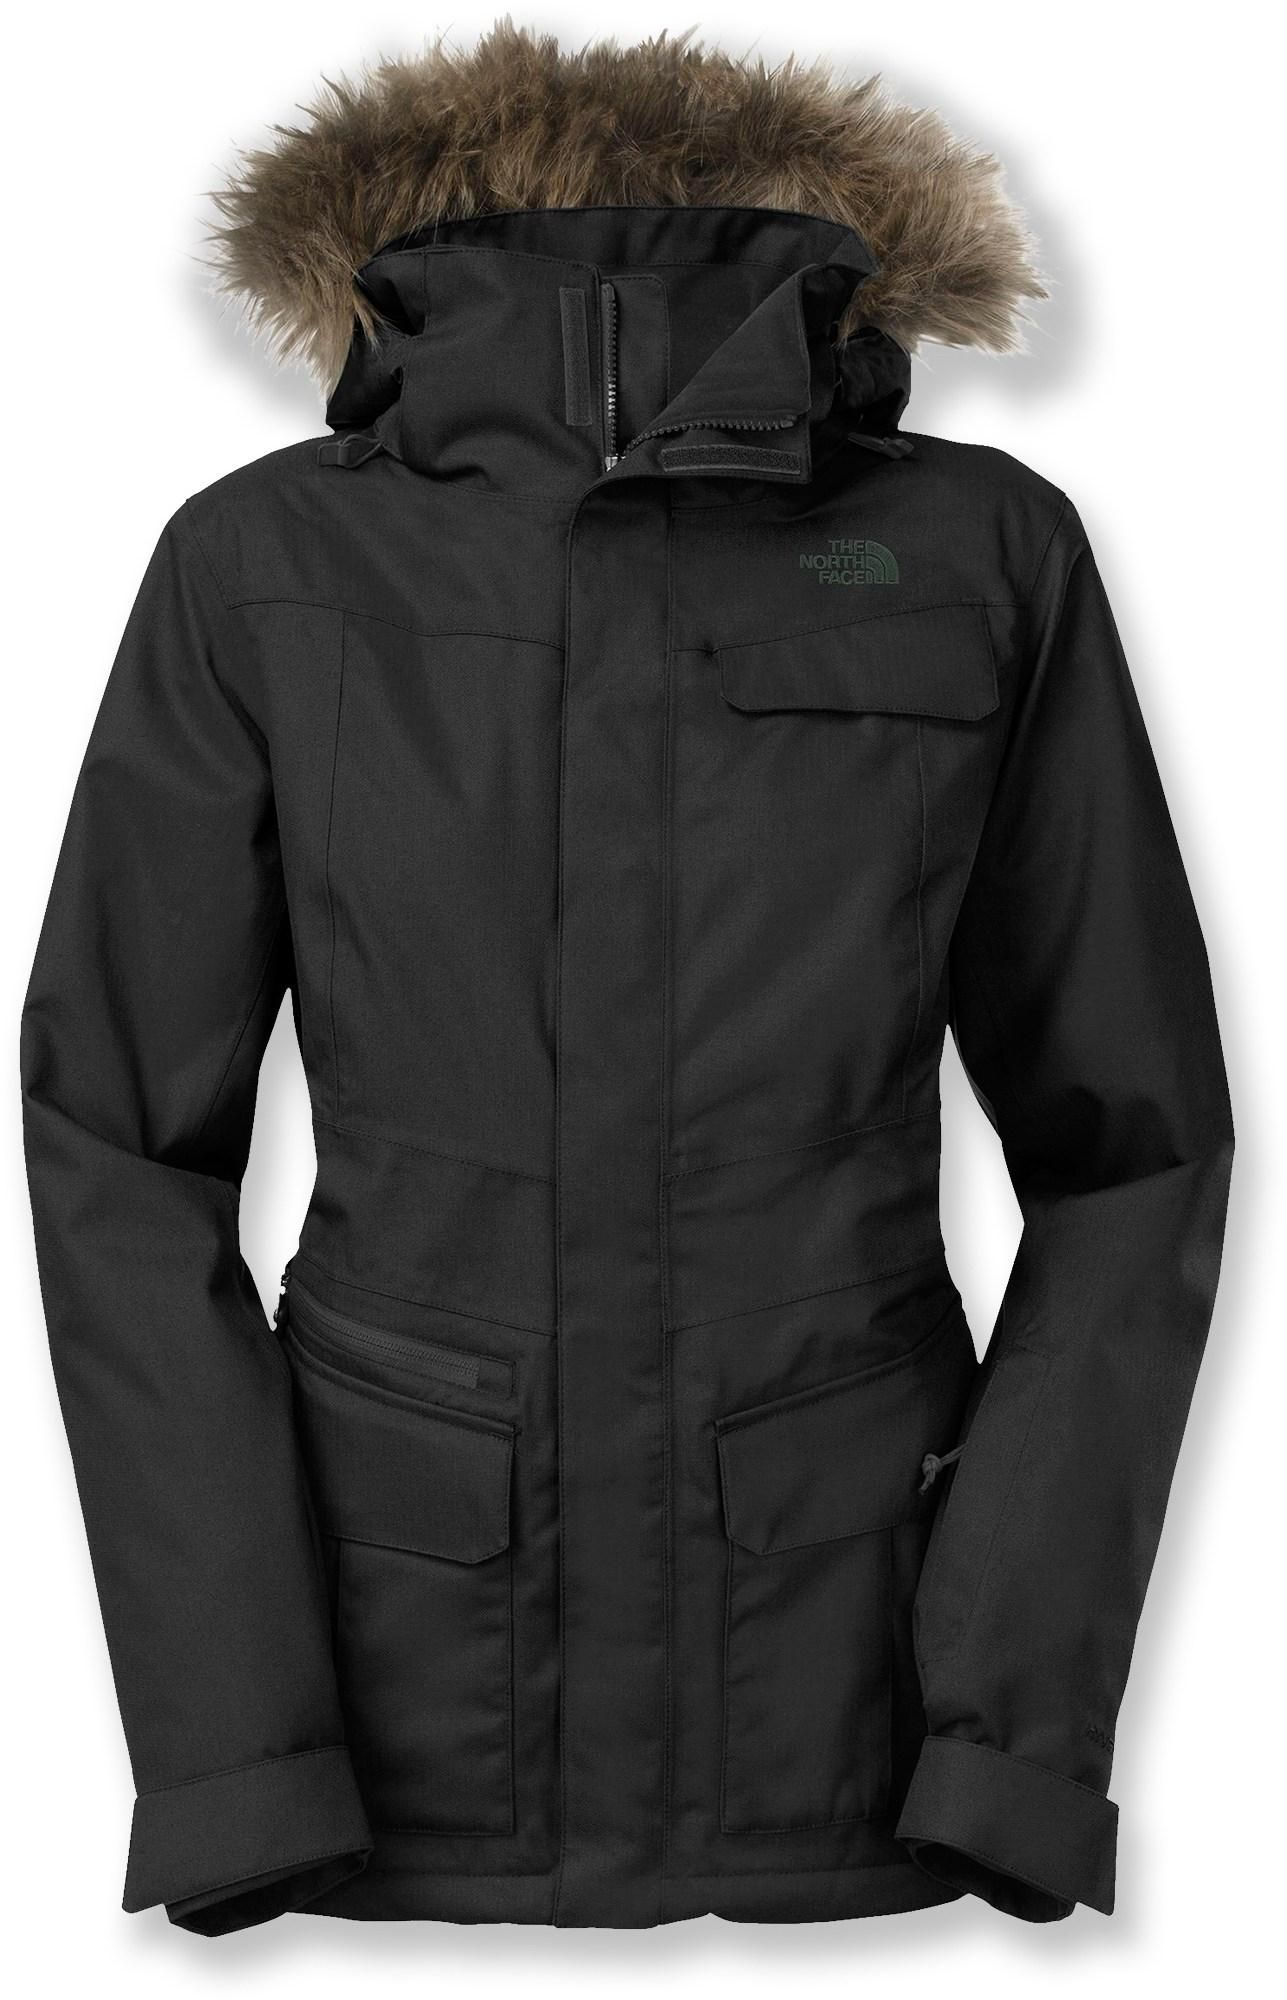 adce867b03 Love this cut and fit! The North Face Baker Delux Insulated Jacket ...